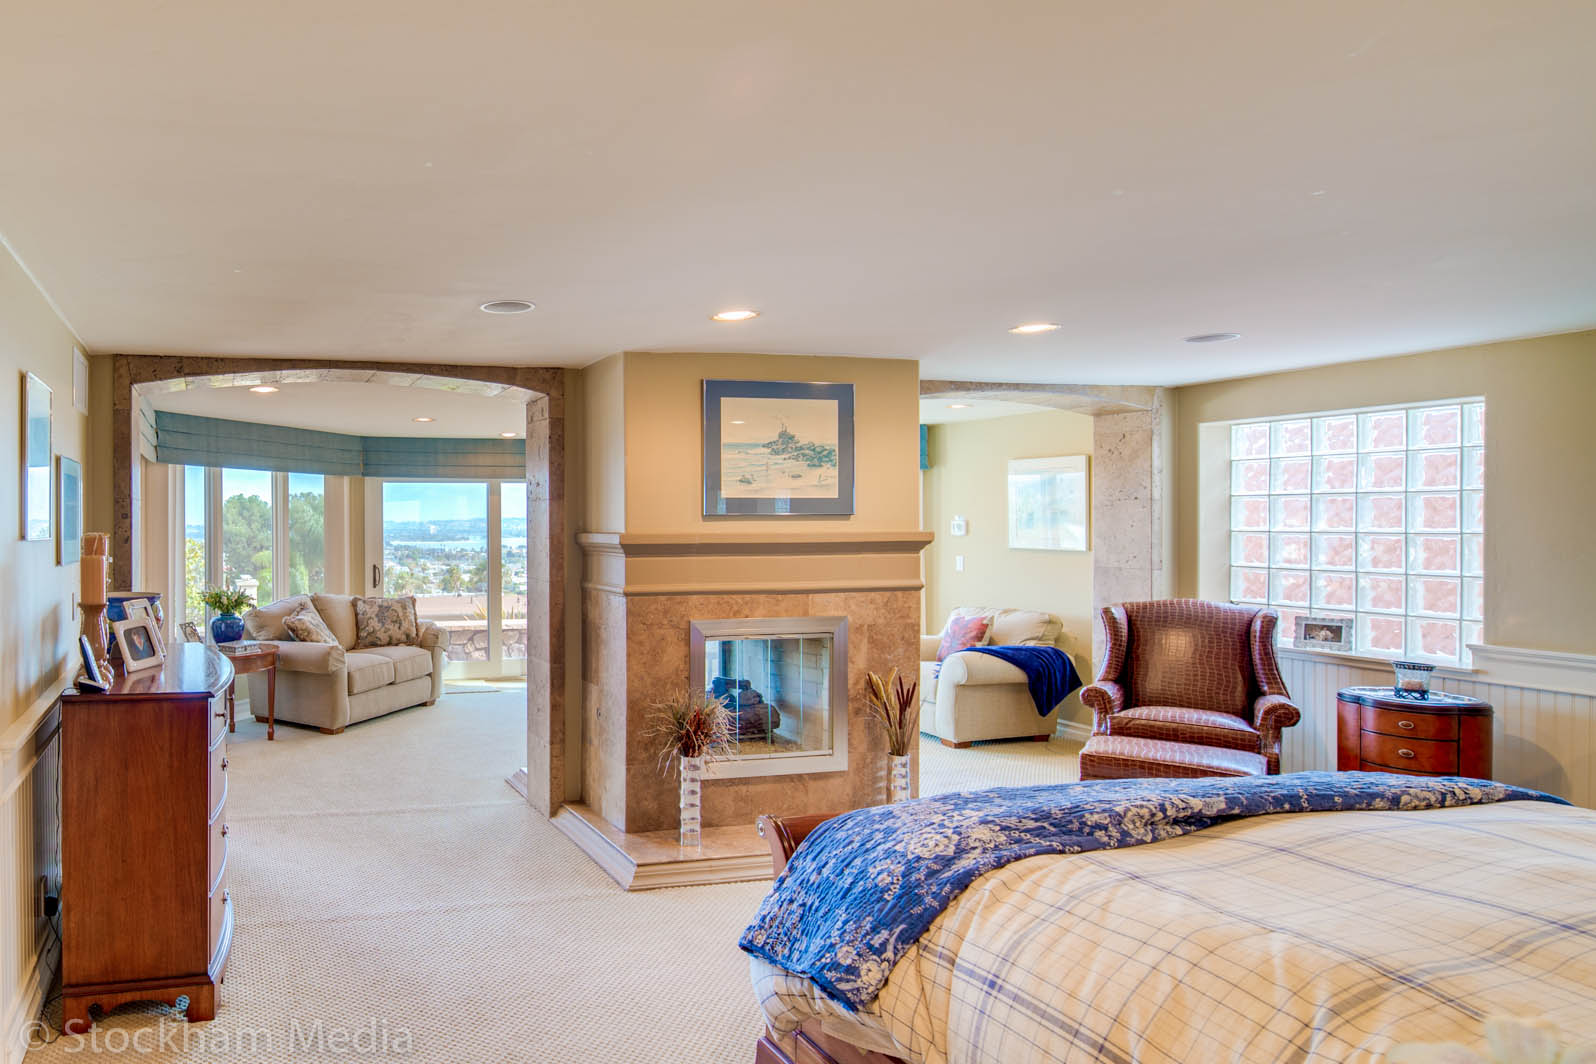 san_diego_real_estate_photography_master_bedroom_2